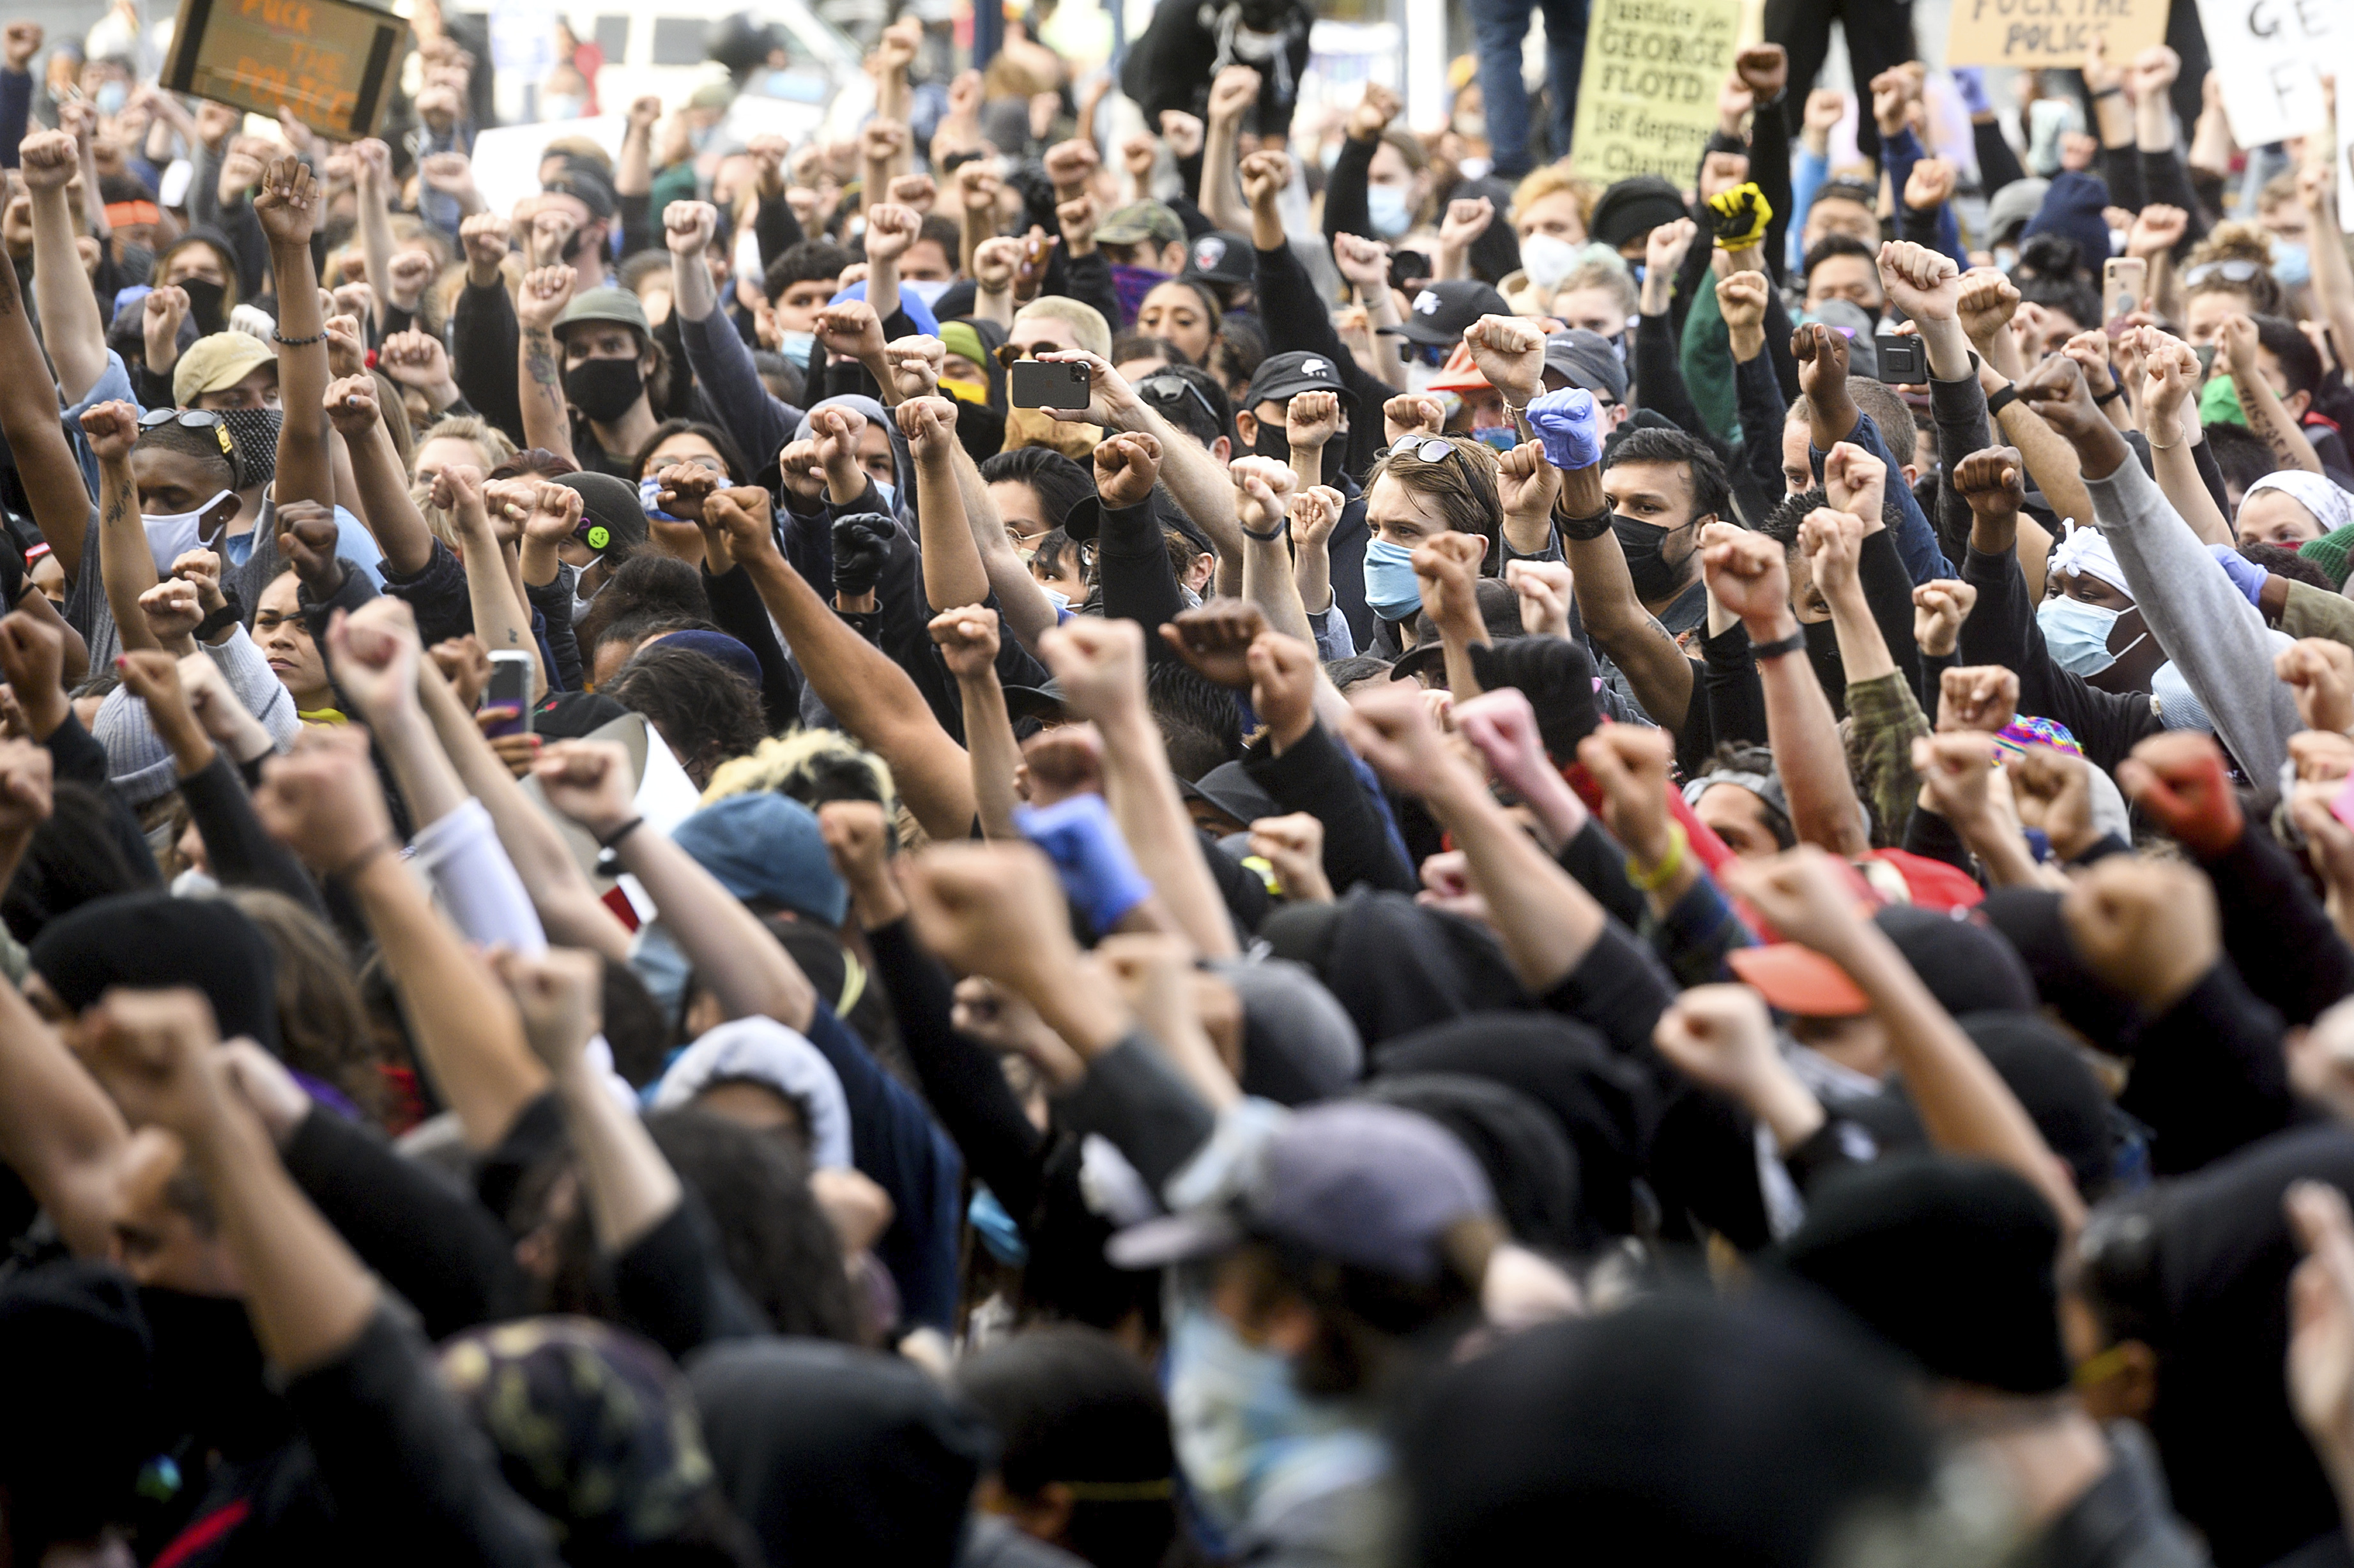 Demonstrators rally in San Francisco on Sunday, May 31, 2020, protesting the death of George Floyd, who died after being restrained by Minneapolis police officers on May 25. (AP Photo/Noah Berger)